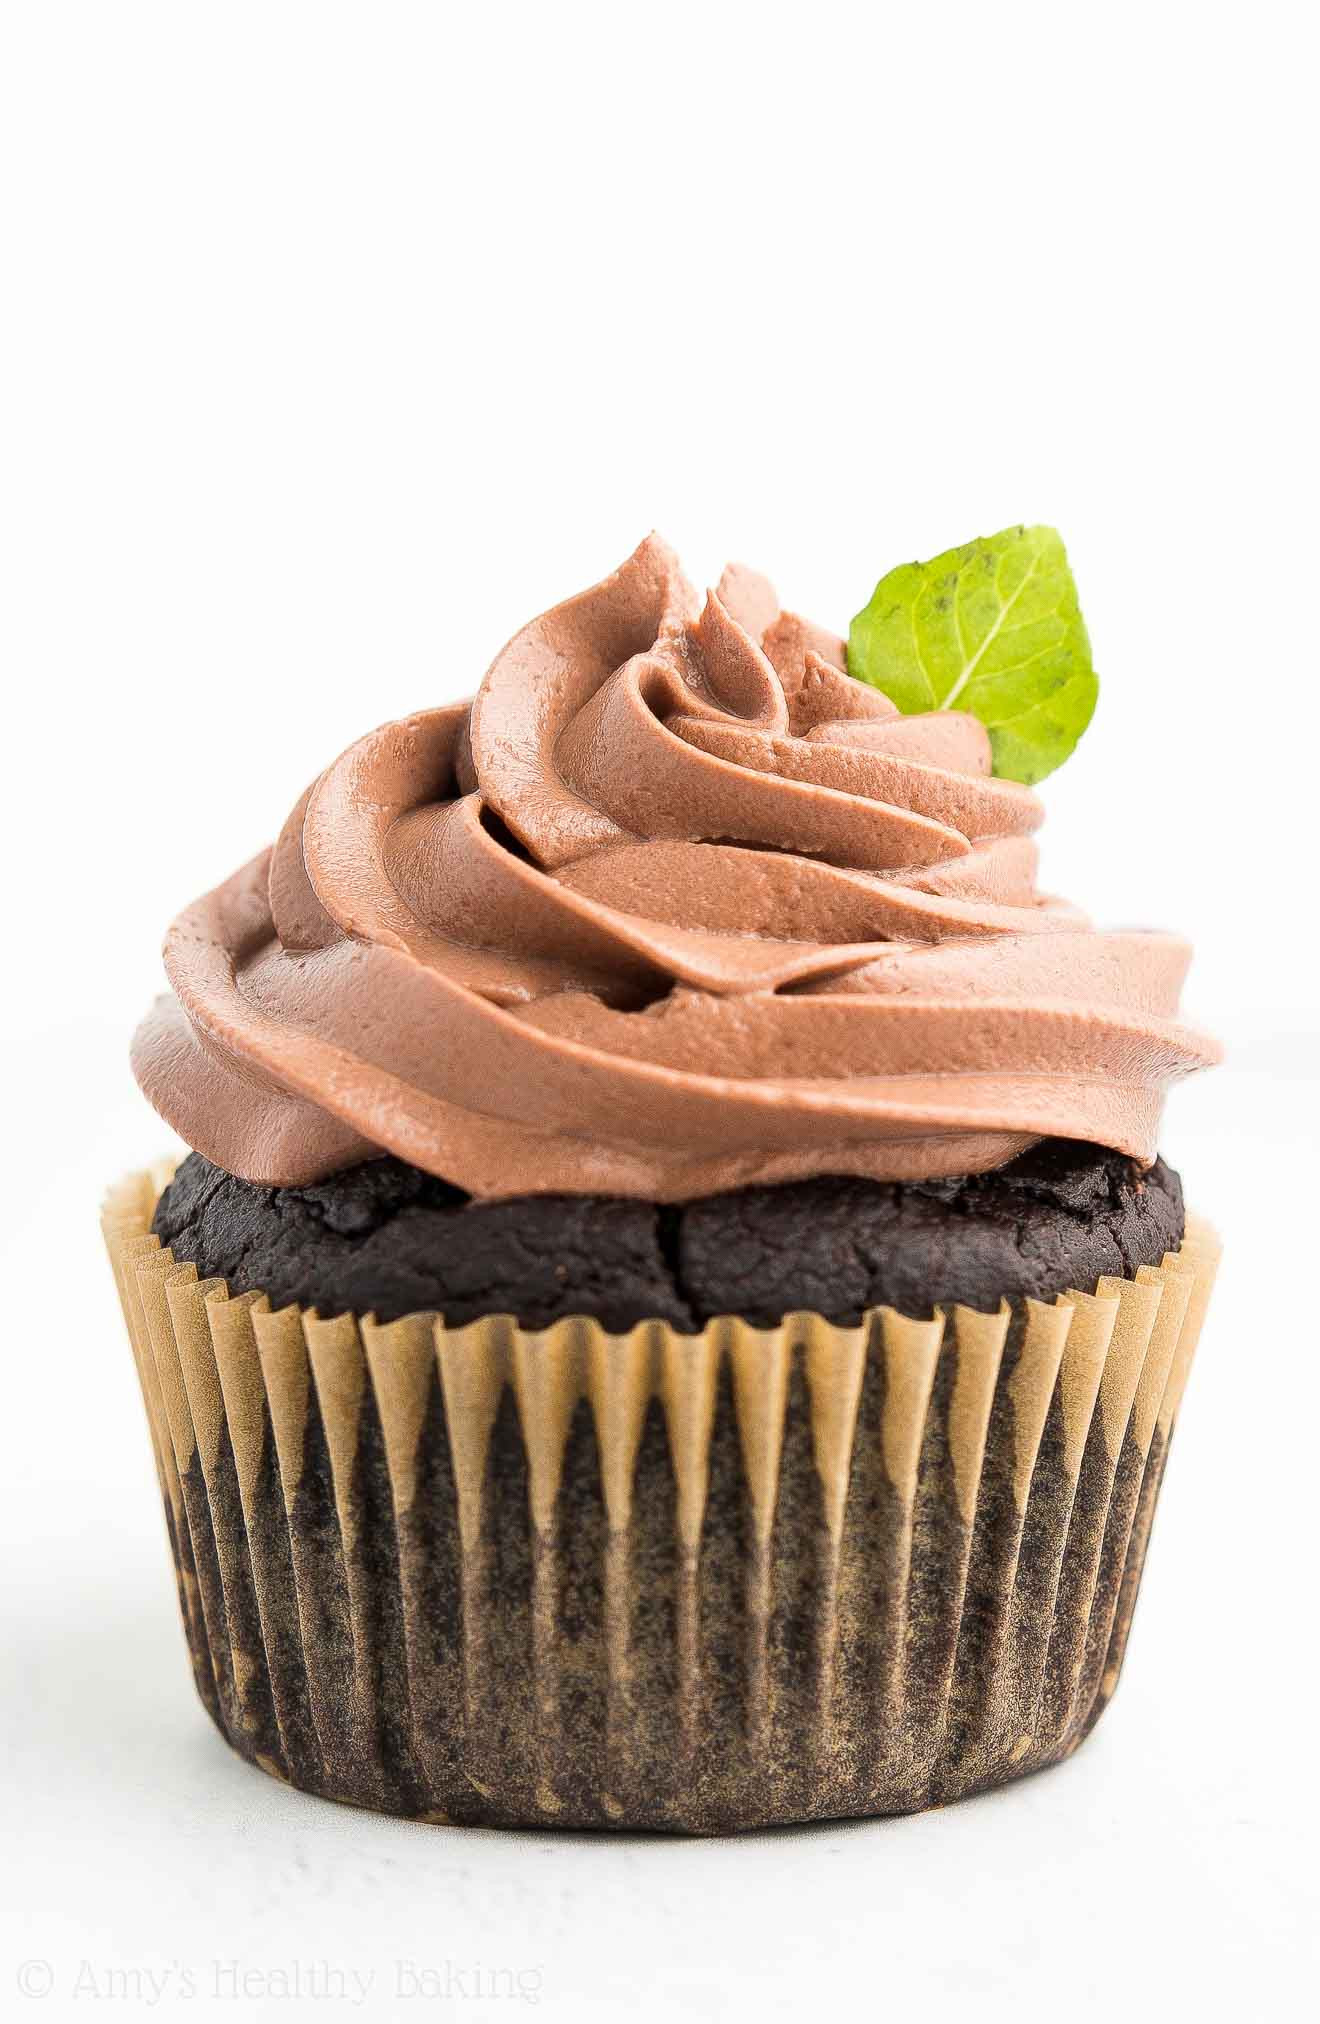 Healthy Chocolate Cupcakes  Healthy Mint Chocolate Cupcakes